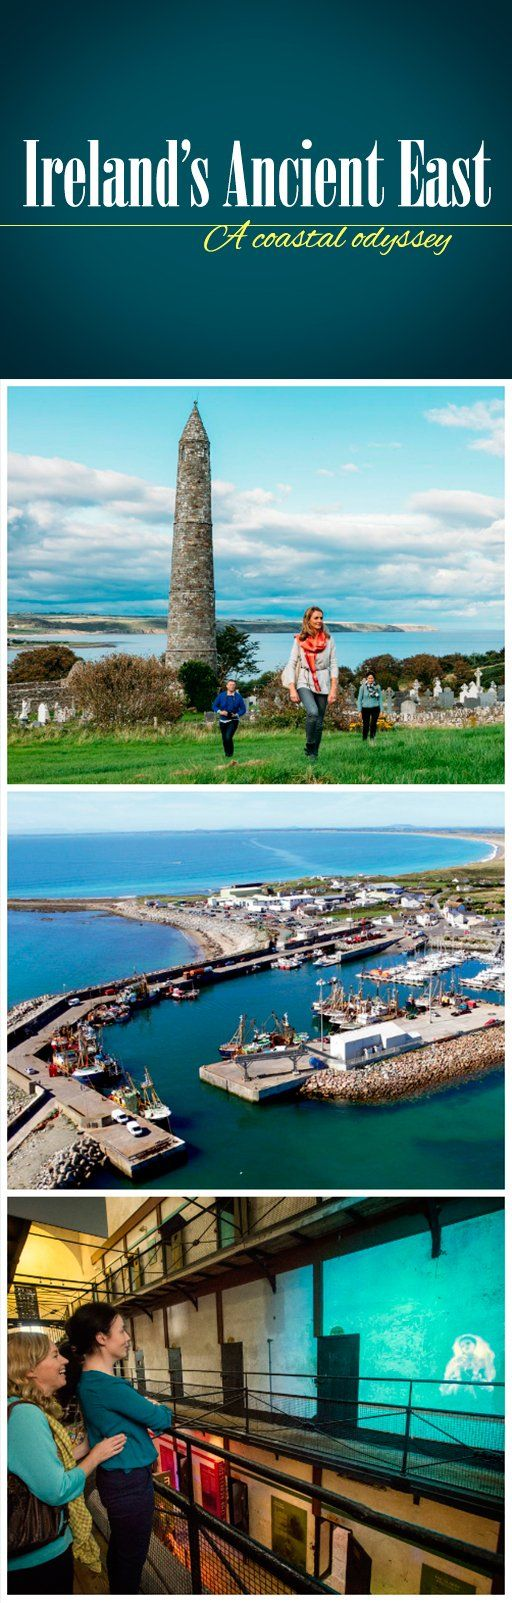 If you're looking for coastal gems steeped in history, Ireland's Ancient East is your number one region. From the hallowed heritage of Ardmore Round Tower in County Waterford to the maritime haven of Kilmore Quay in County Wexford, this seaside journey is brimming with heritage, tradition, and spellbinding natural beauty.